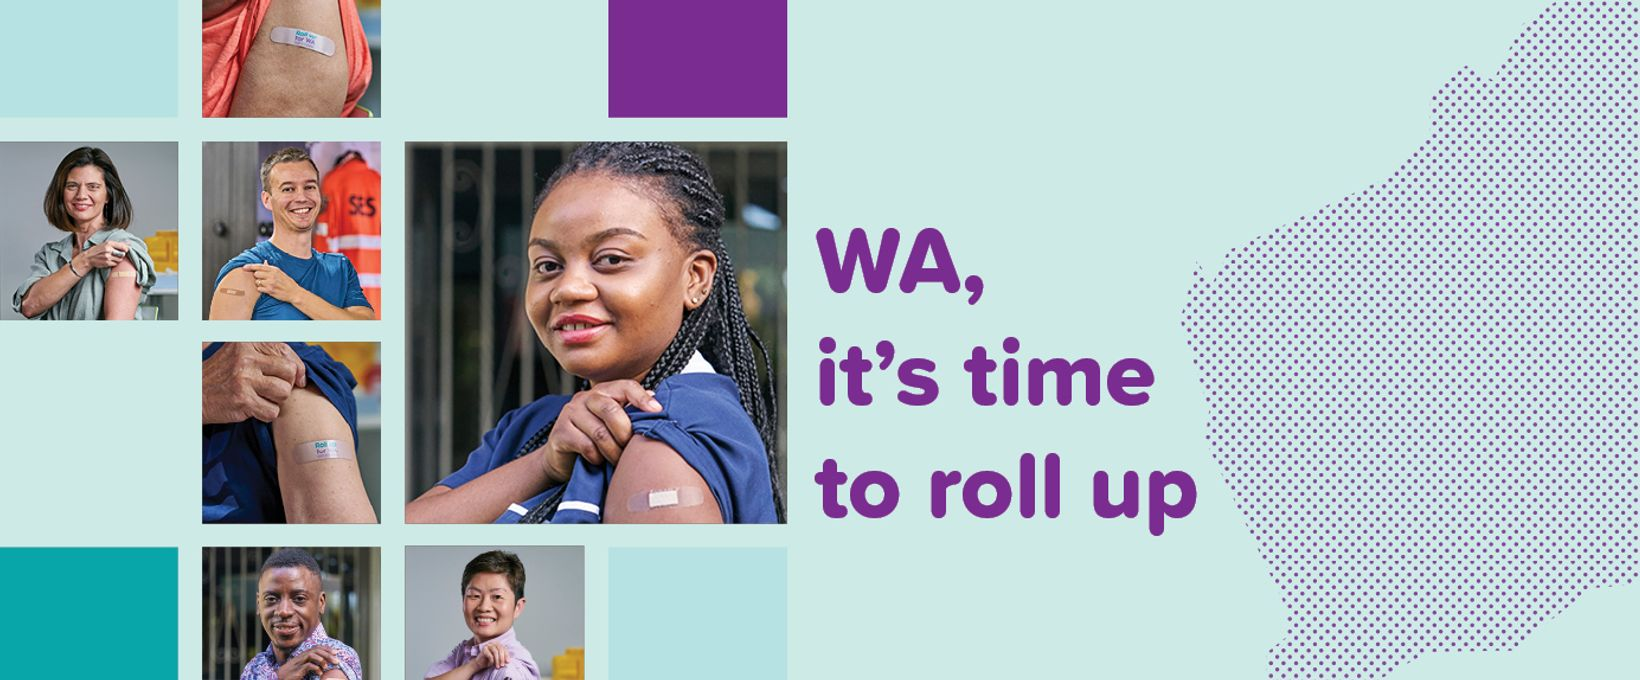 Roll up for WA banner graphics and images of people who have had a vaccine